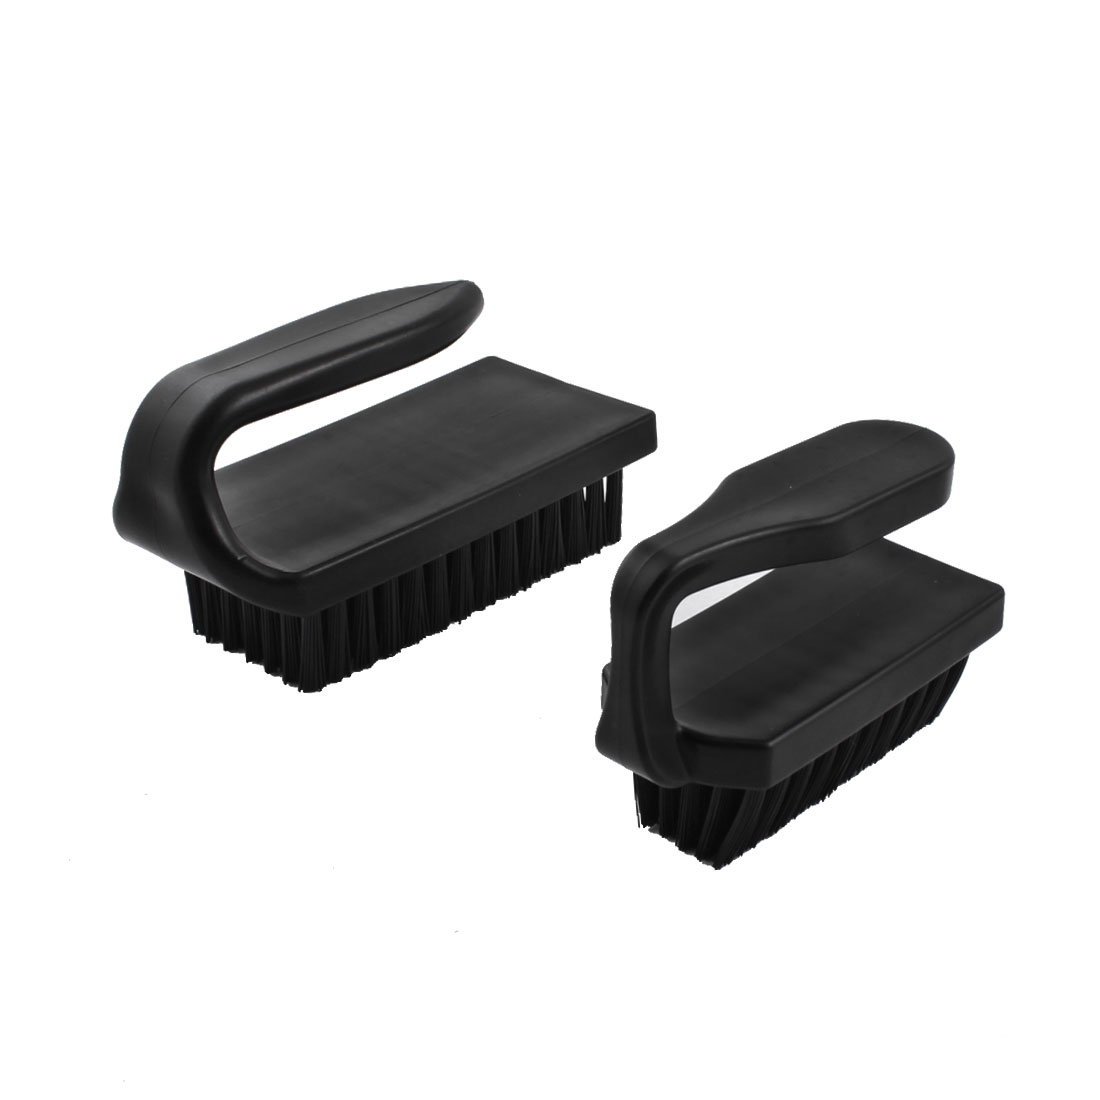 U Type Black Plastic Handle Static Control Conductive Ground Anti-Static Dust Cleaning Brush Black 2Pcs